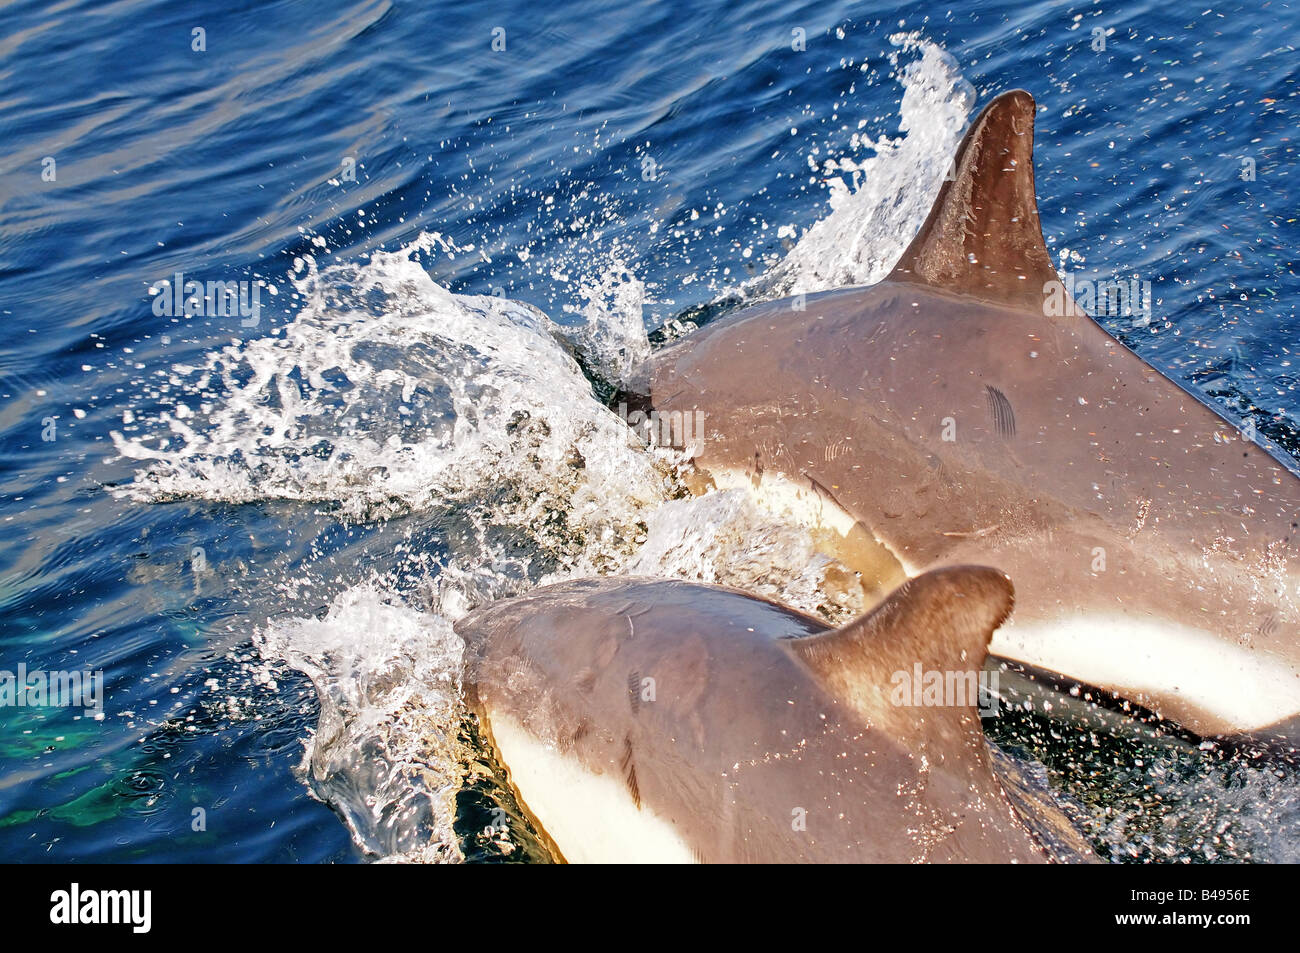 common dolphin delphinus delphis in european waters on the surface - Stock Image